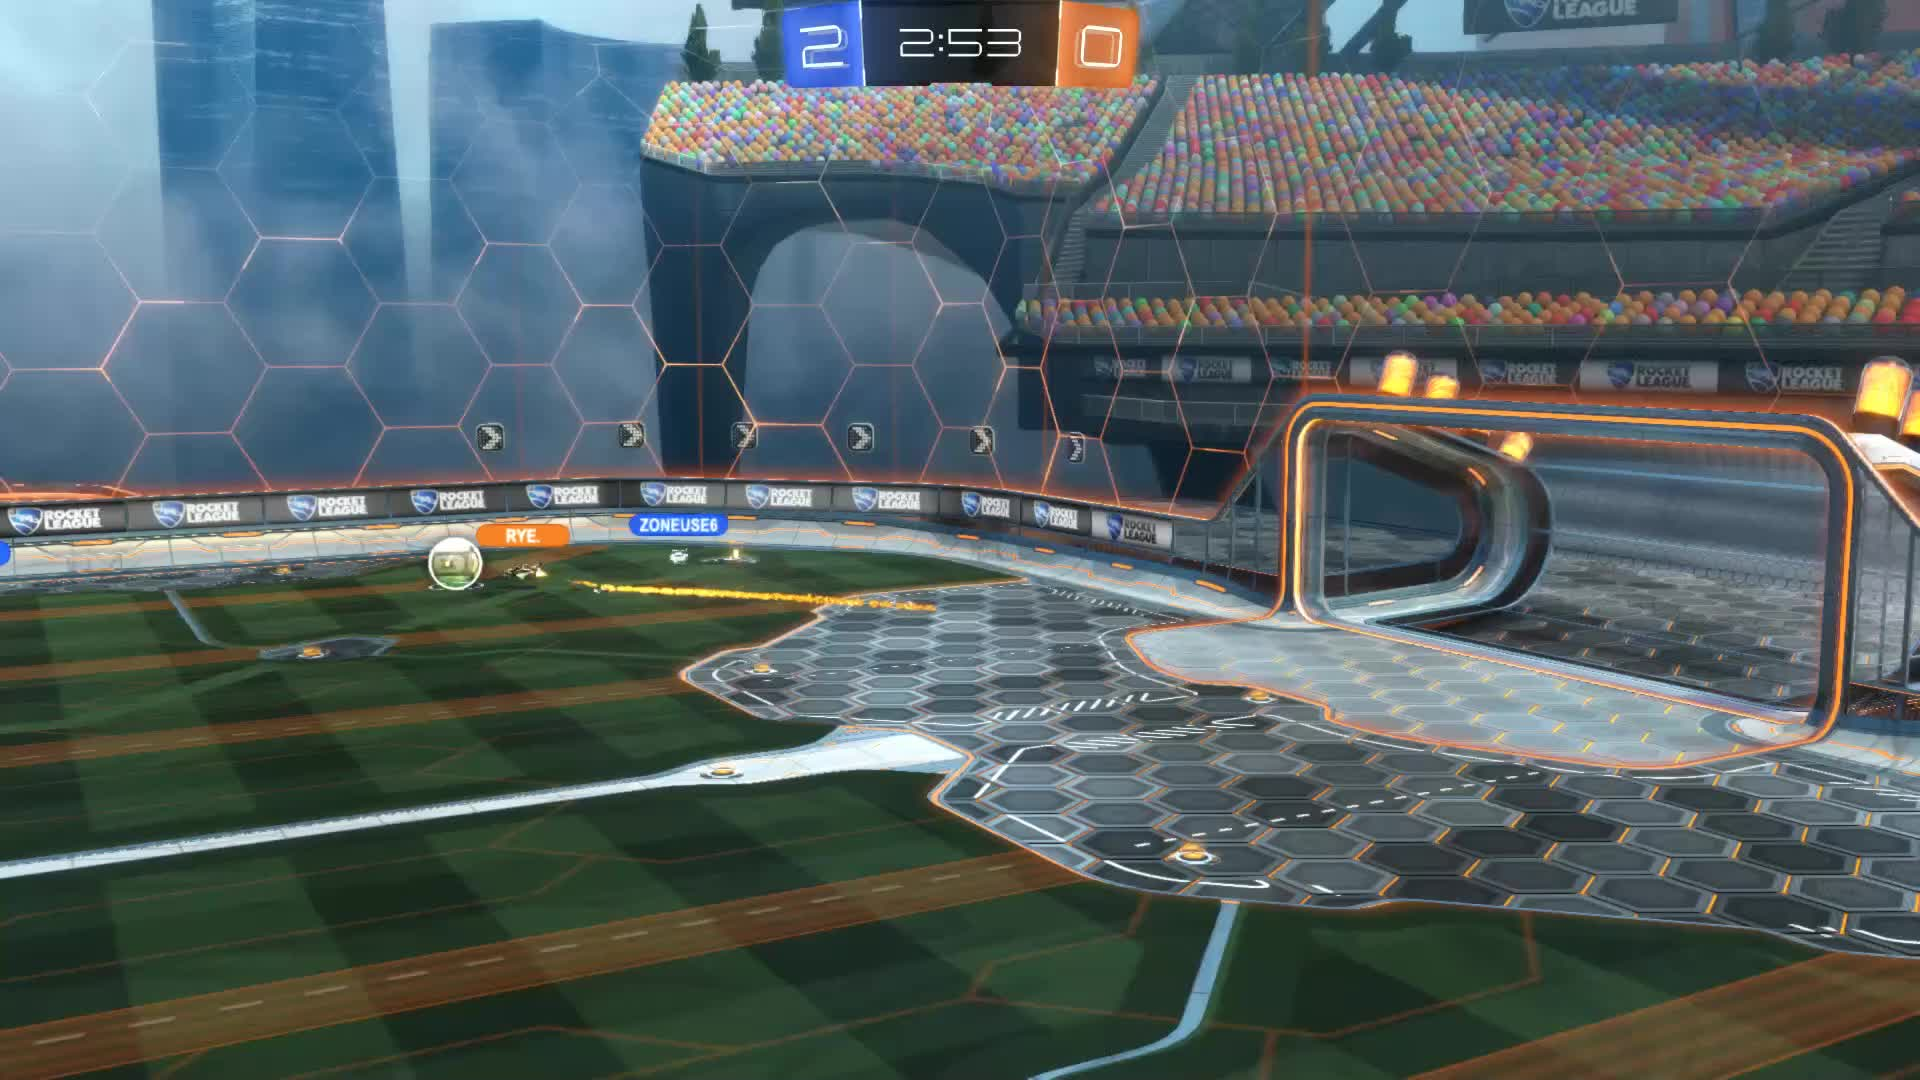 Gif Your Game, GifYourGame, Goal, Rocket League, RocketLeague, rye., Goal 3: rye. GIFs